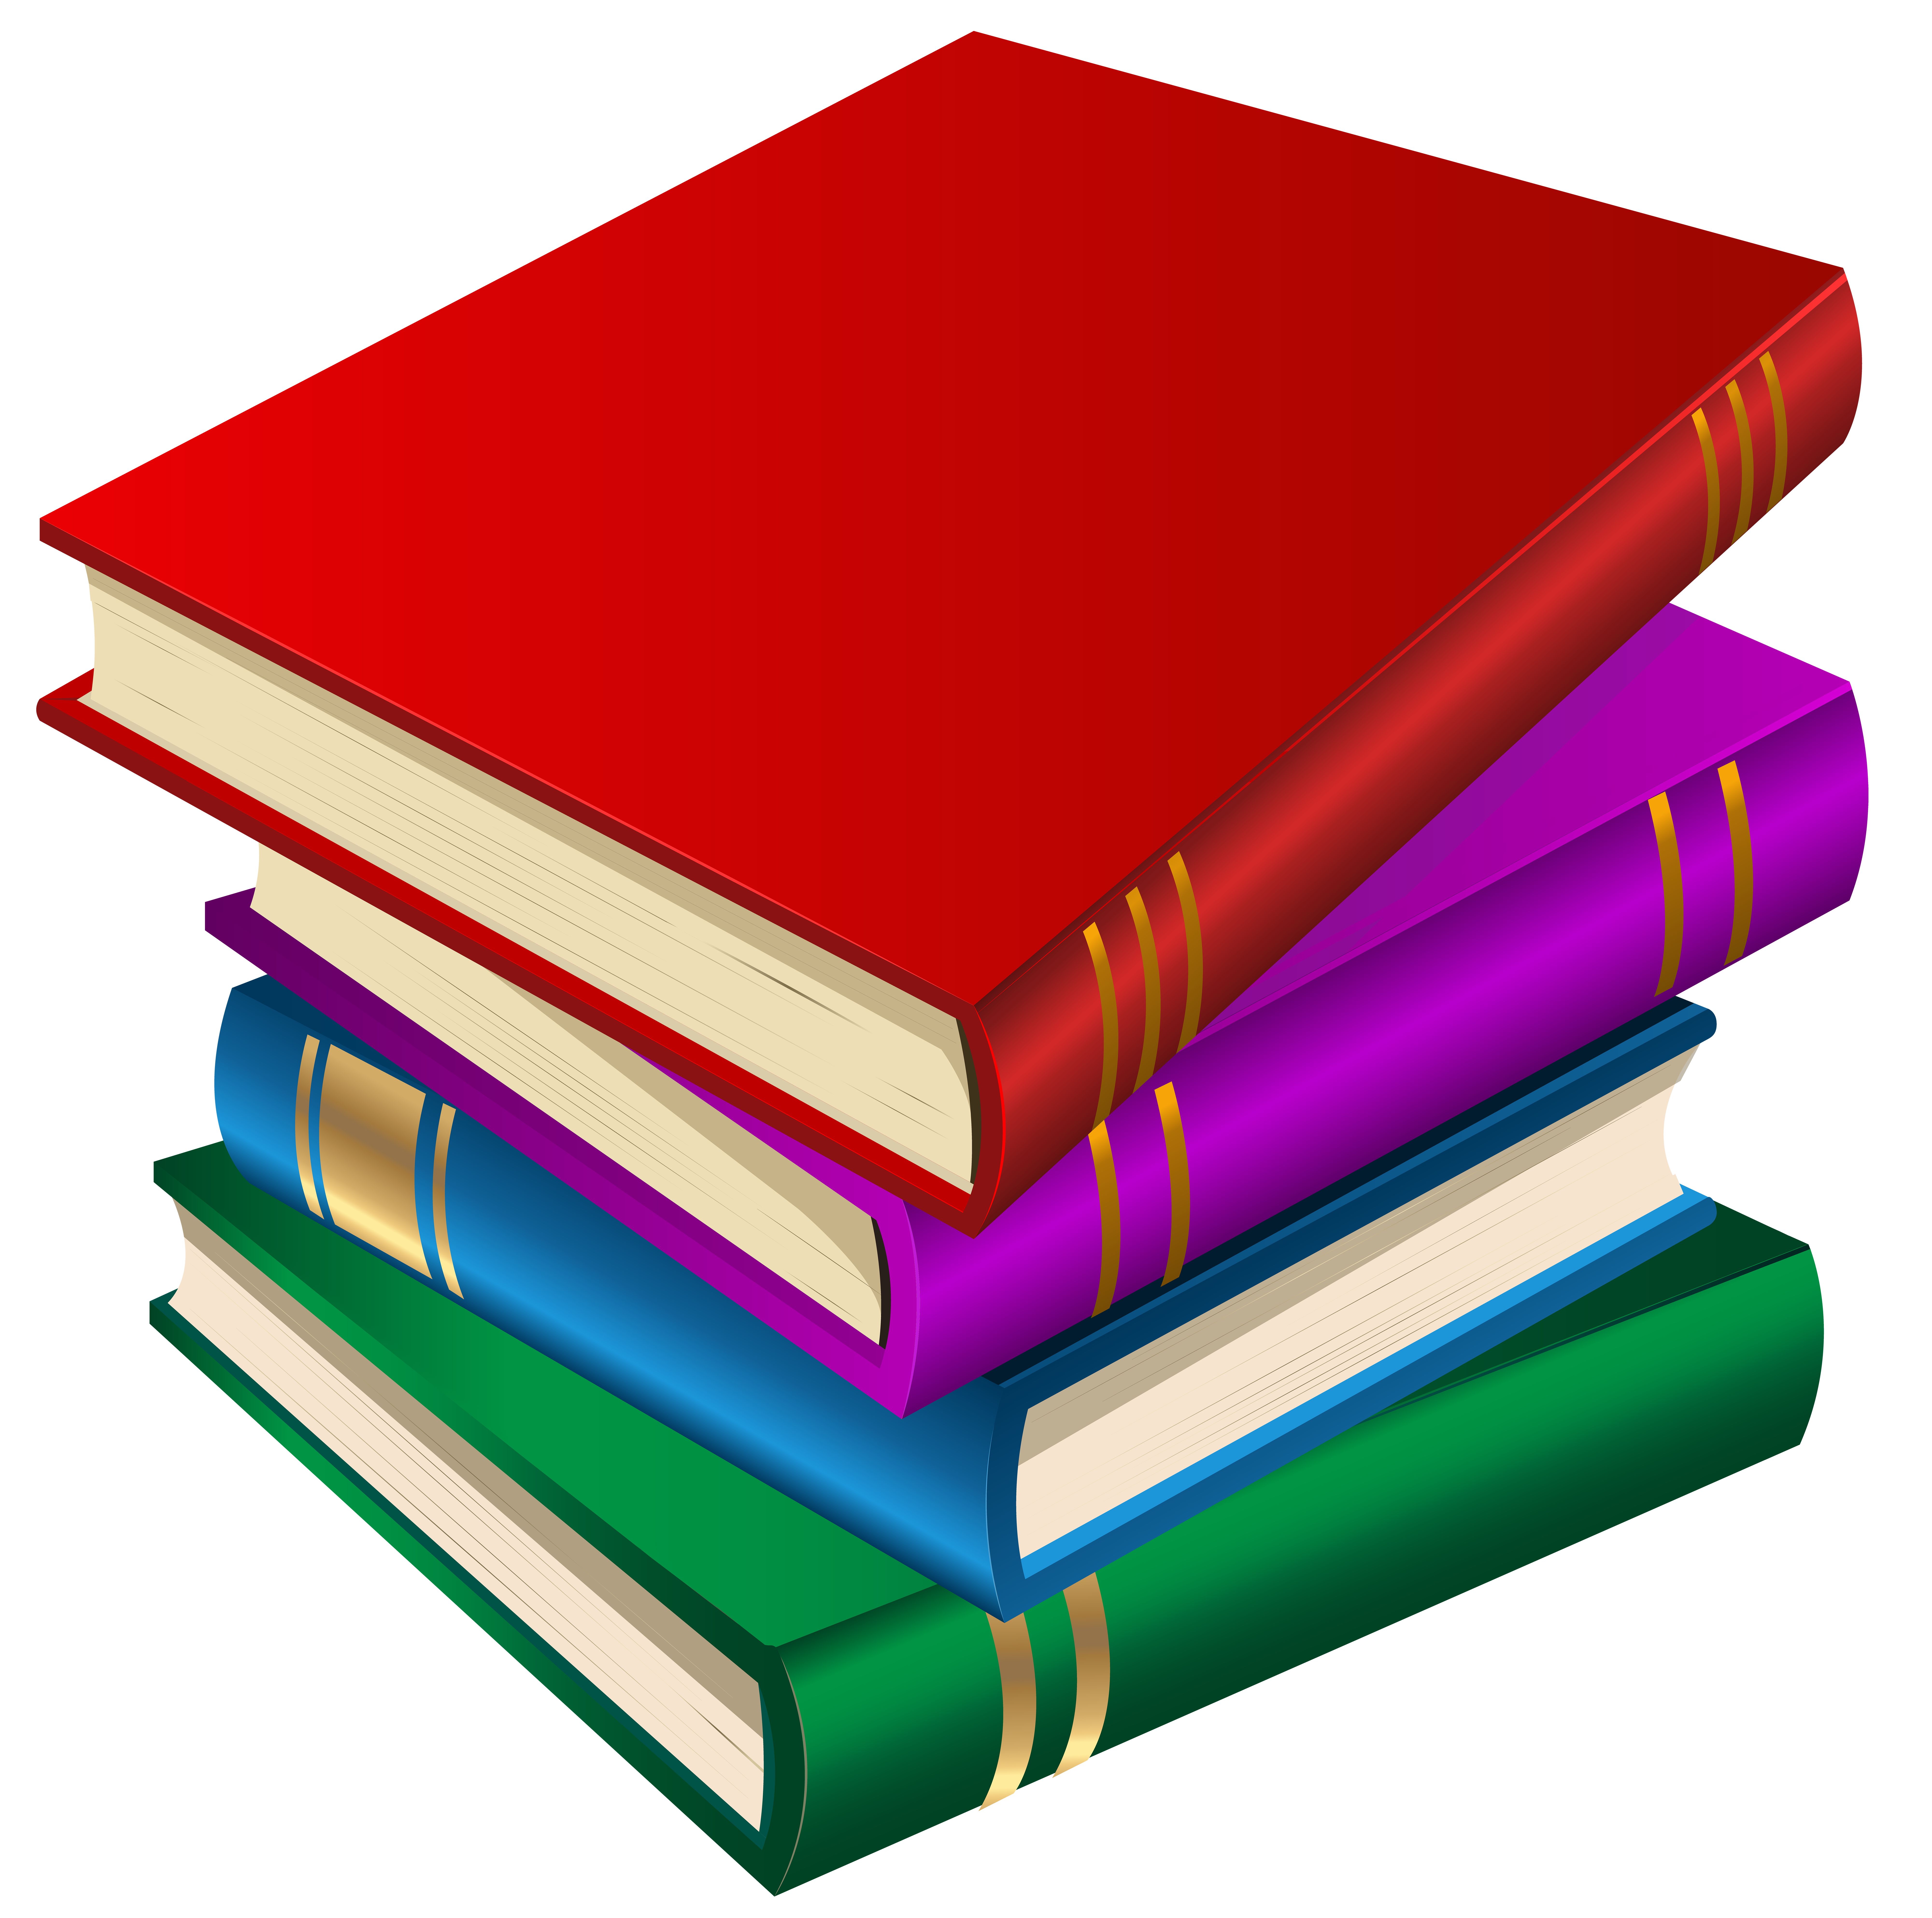 Books Clipart Png & Free Books Clipart.png Transparent.